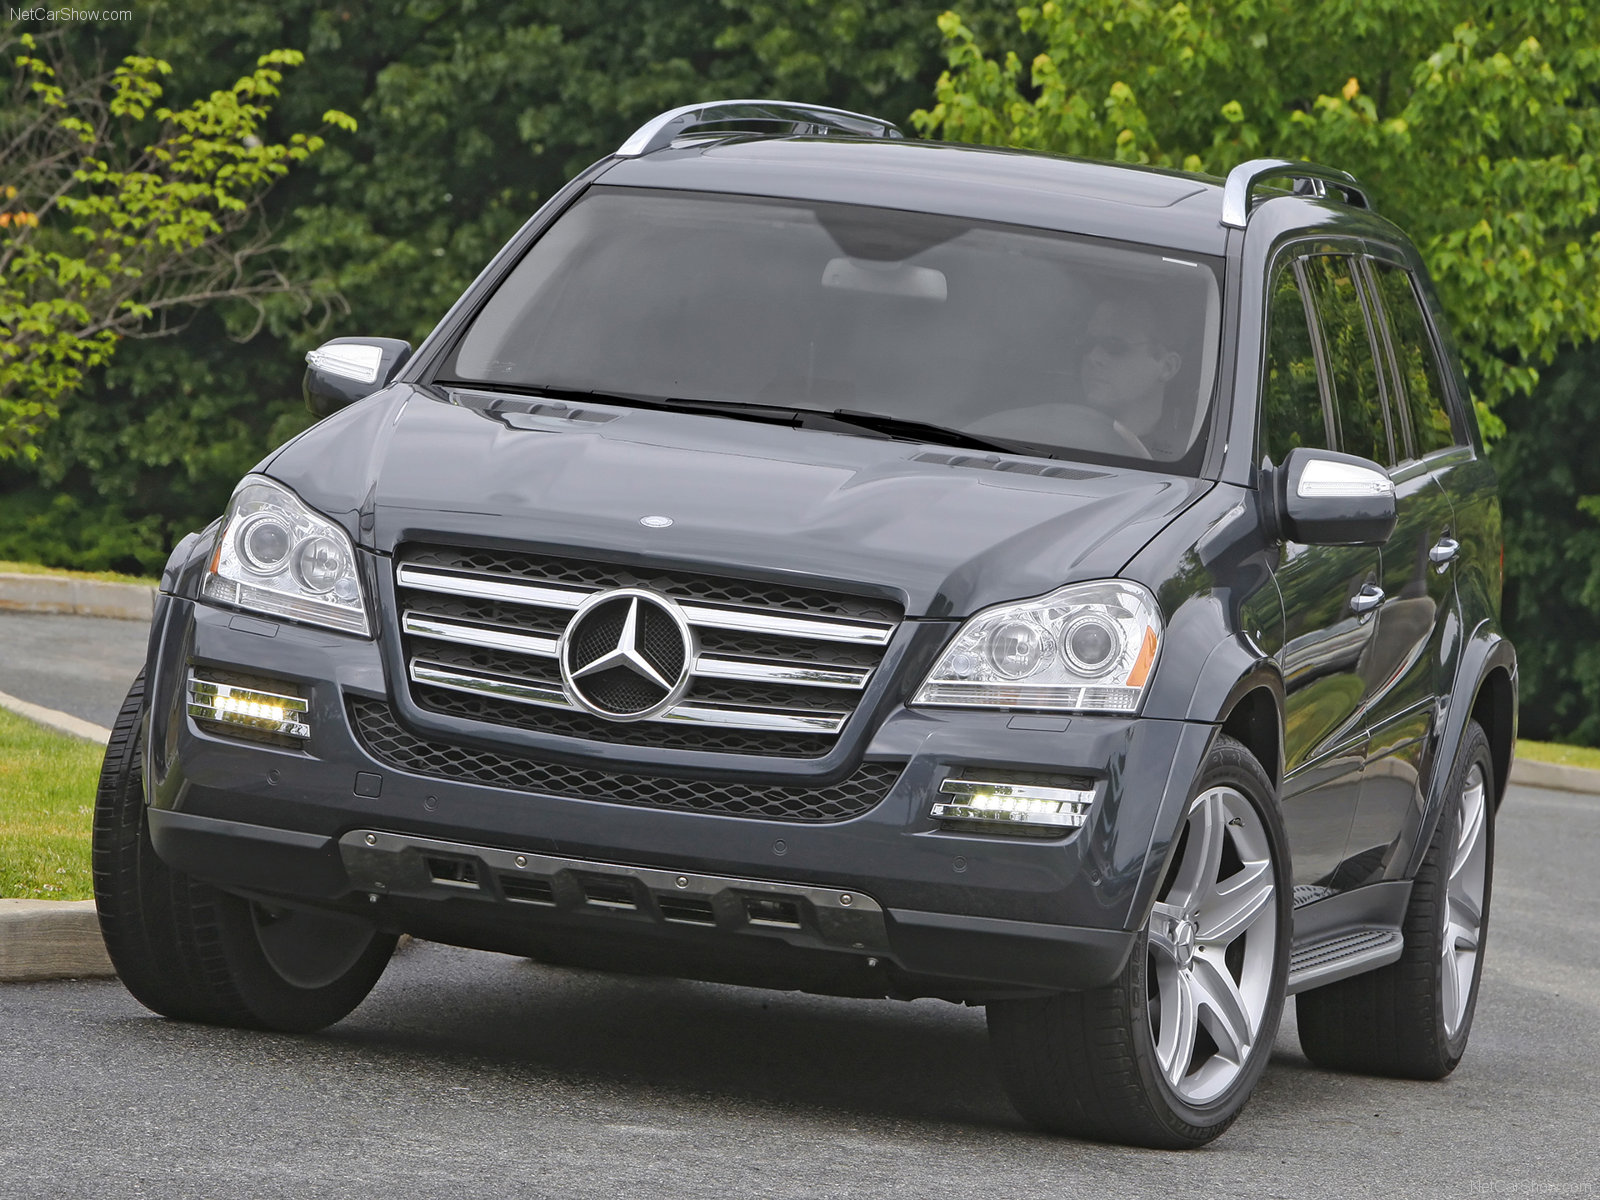 3dtuning of mercedes gl class suv 2010 for 2010 mercedes benz clk350